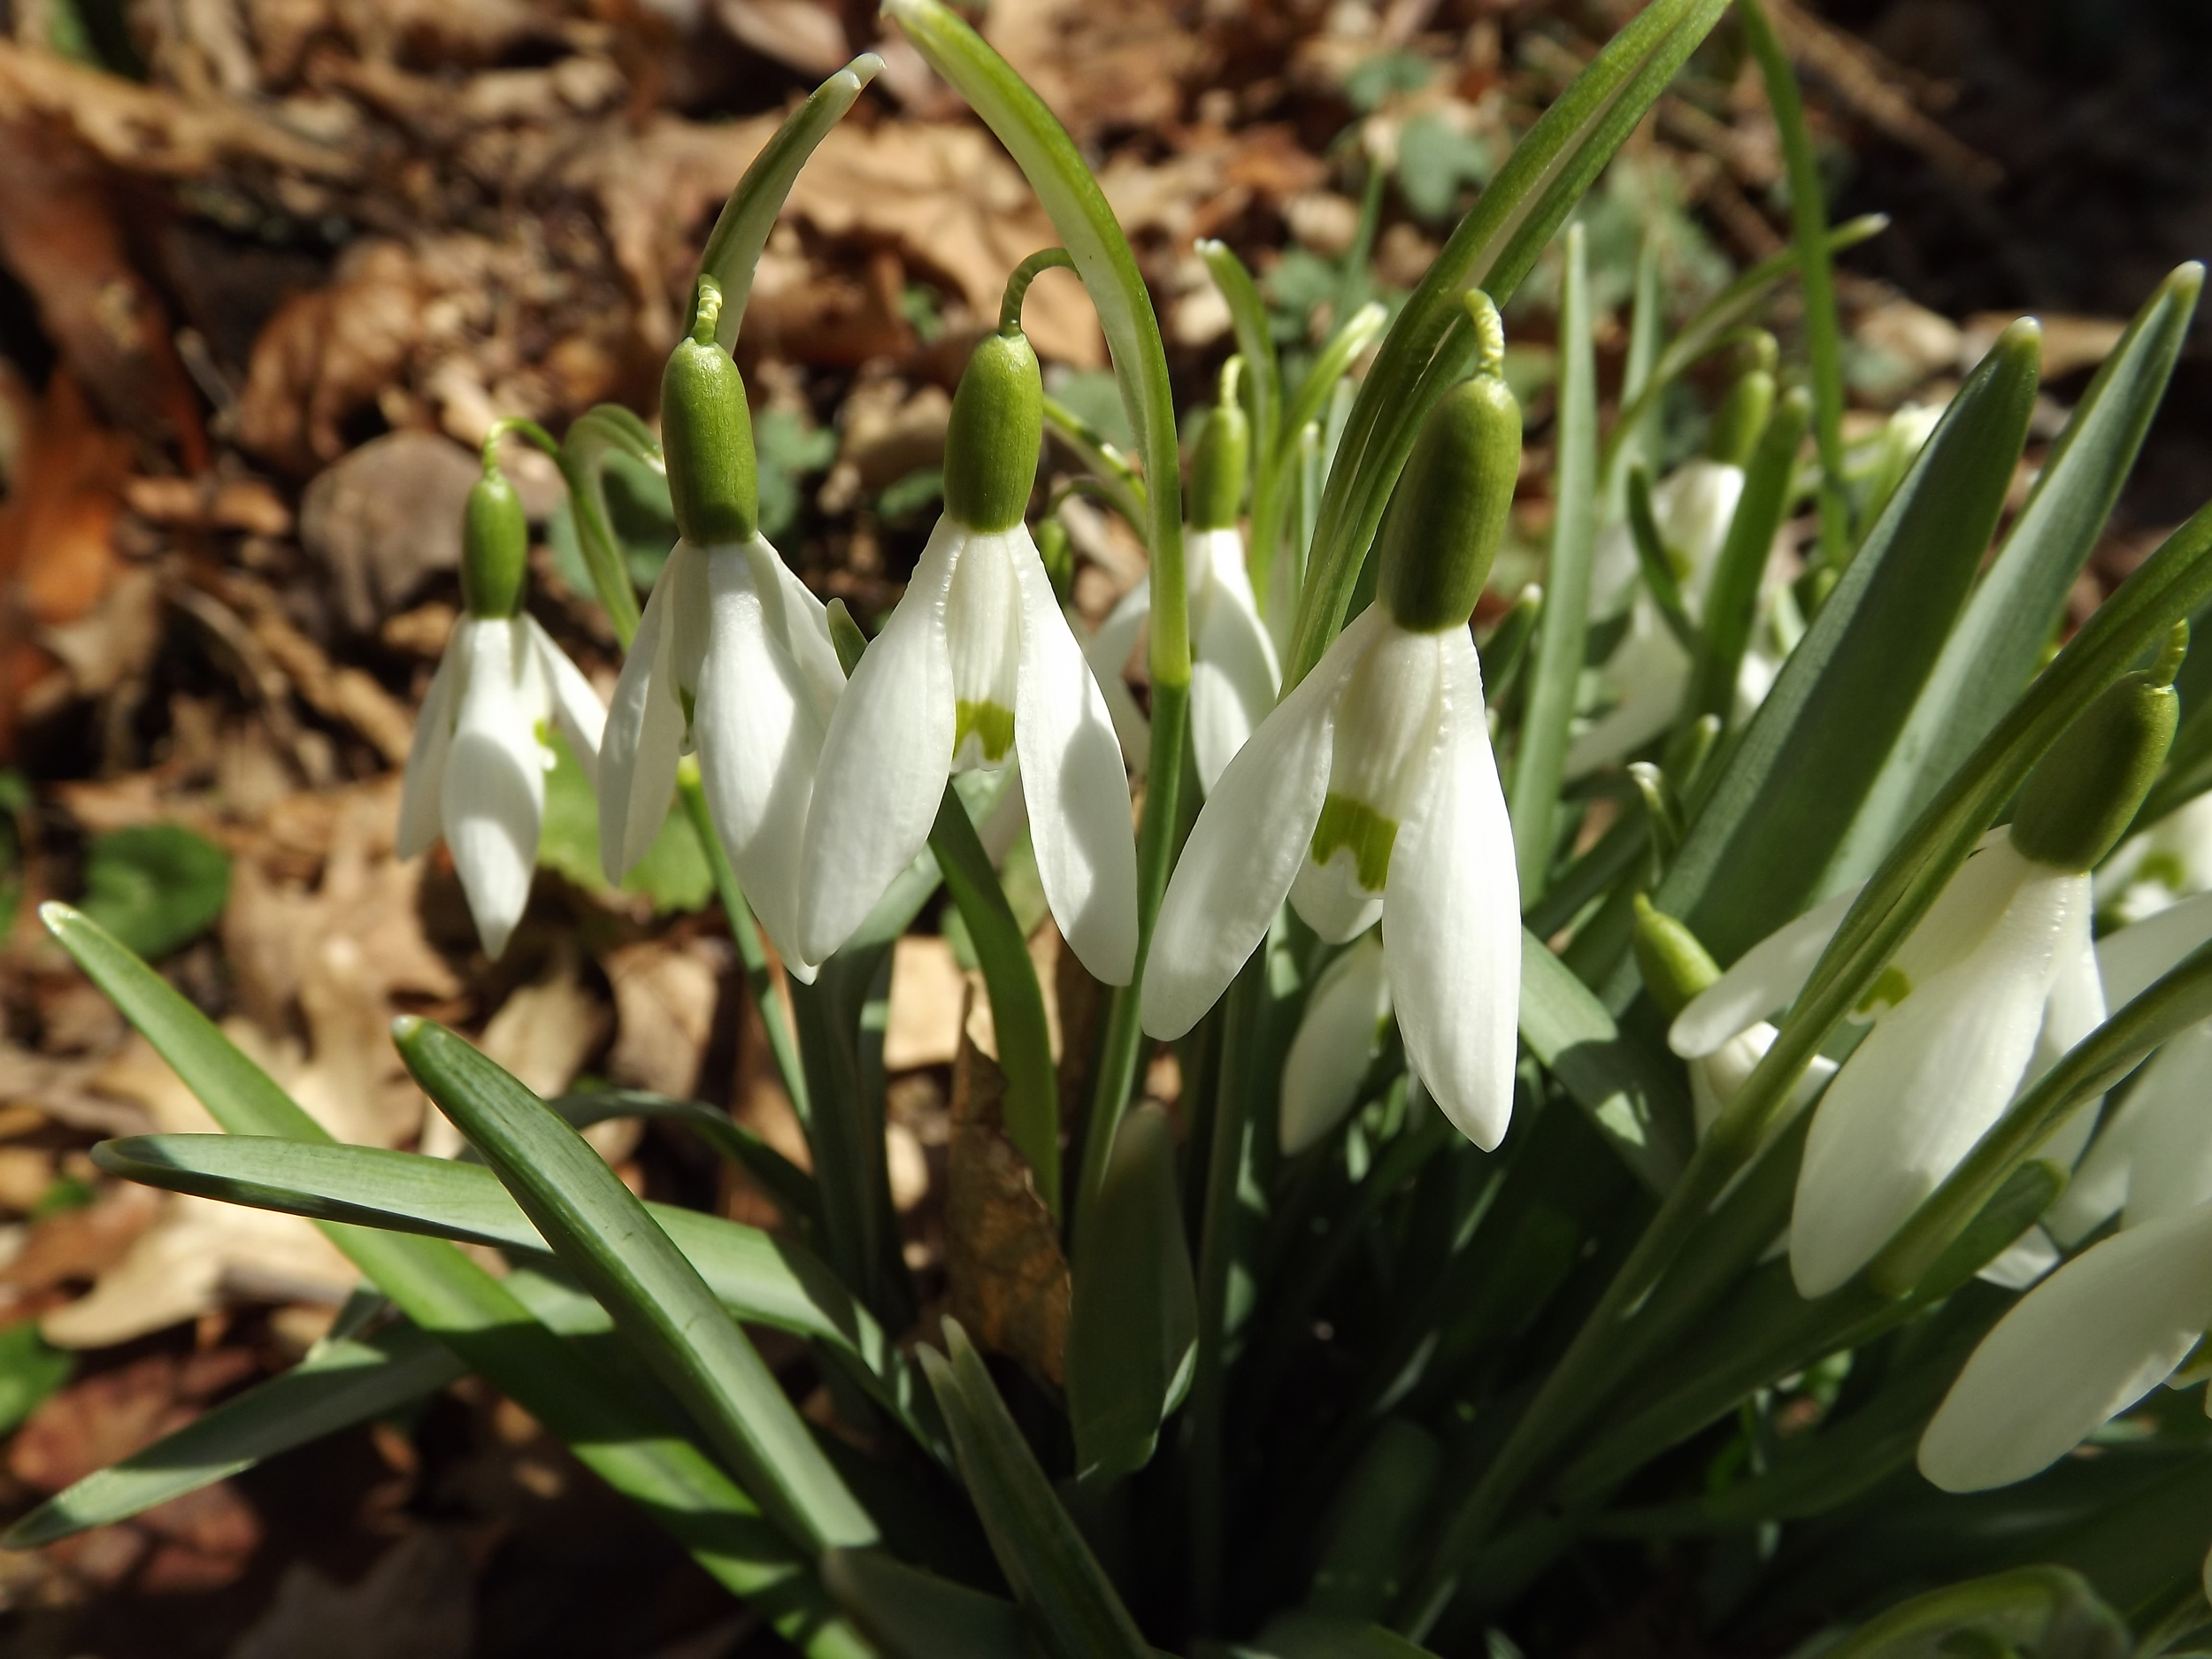 Snowdrops ( Galanthus nivalis ) Snowdrops are aptly named since they are one of the very first wildflowers to appear after the snow finally melts plus their brilliant white blossoms are reminiscent of freshly fallen snow.